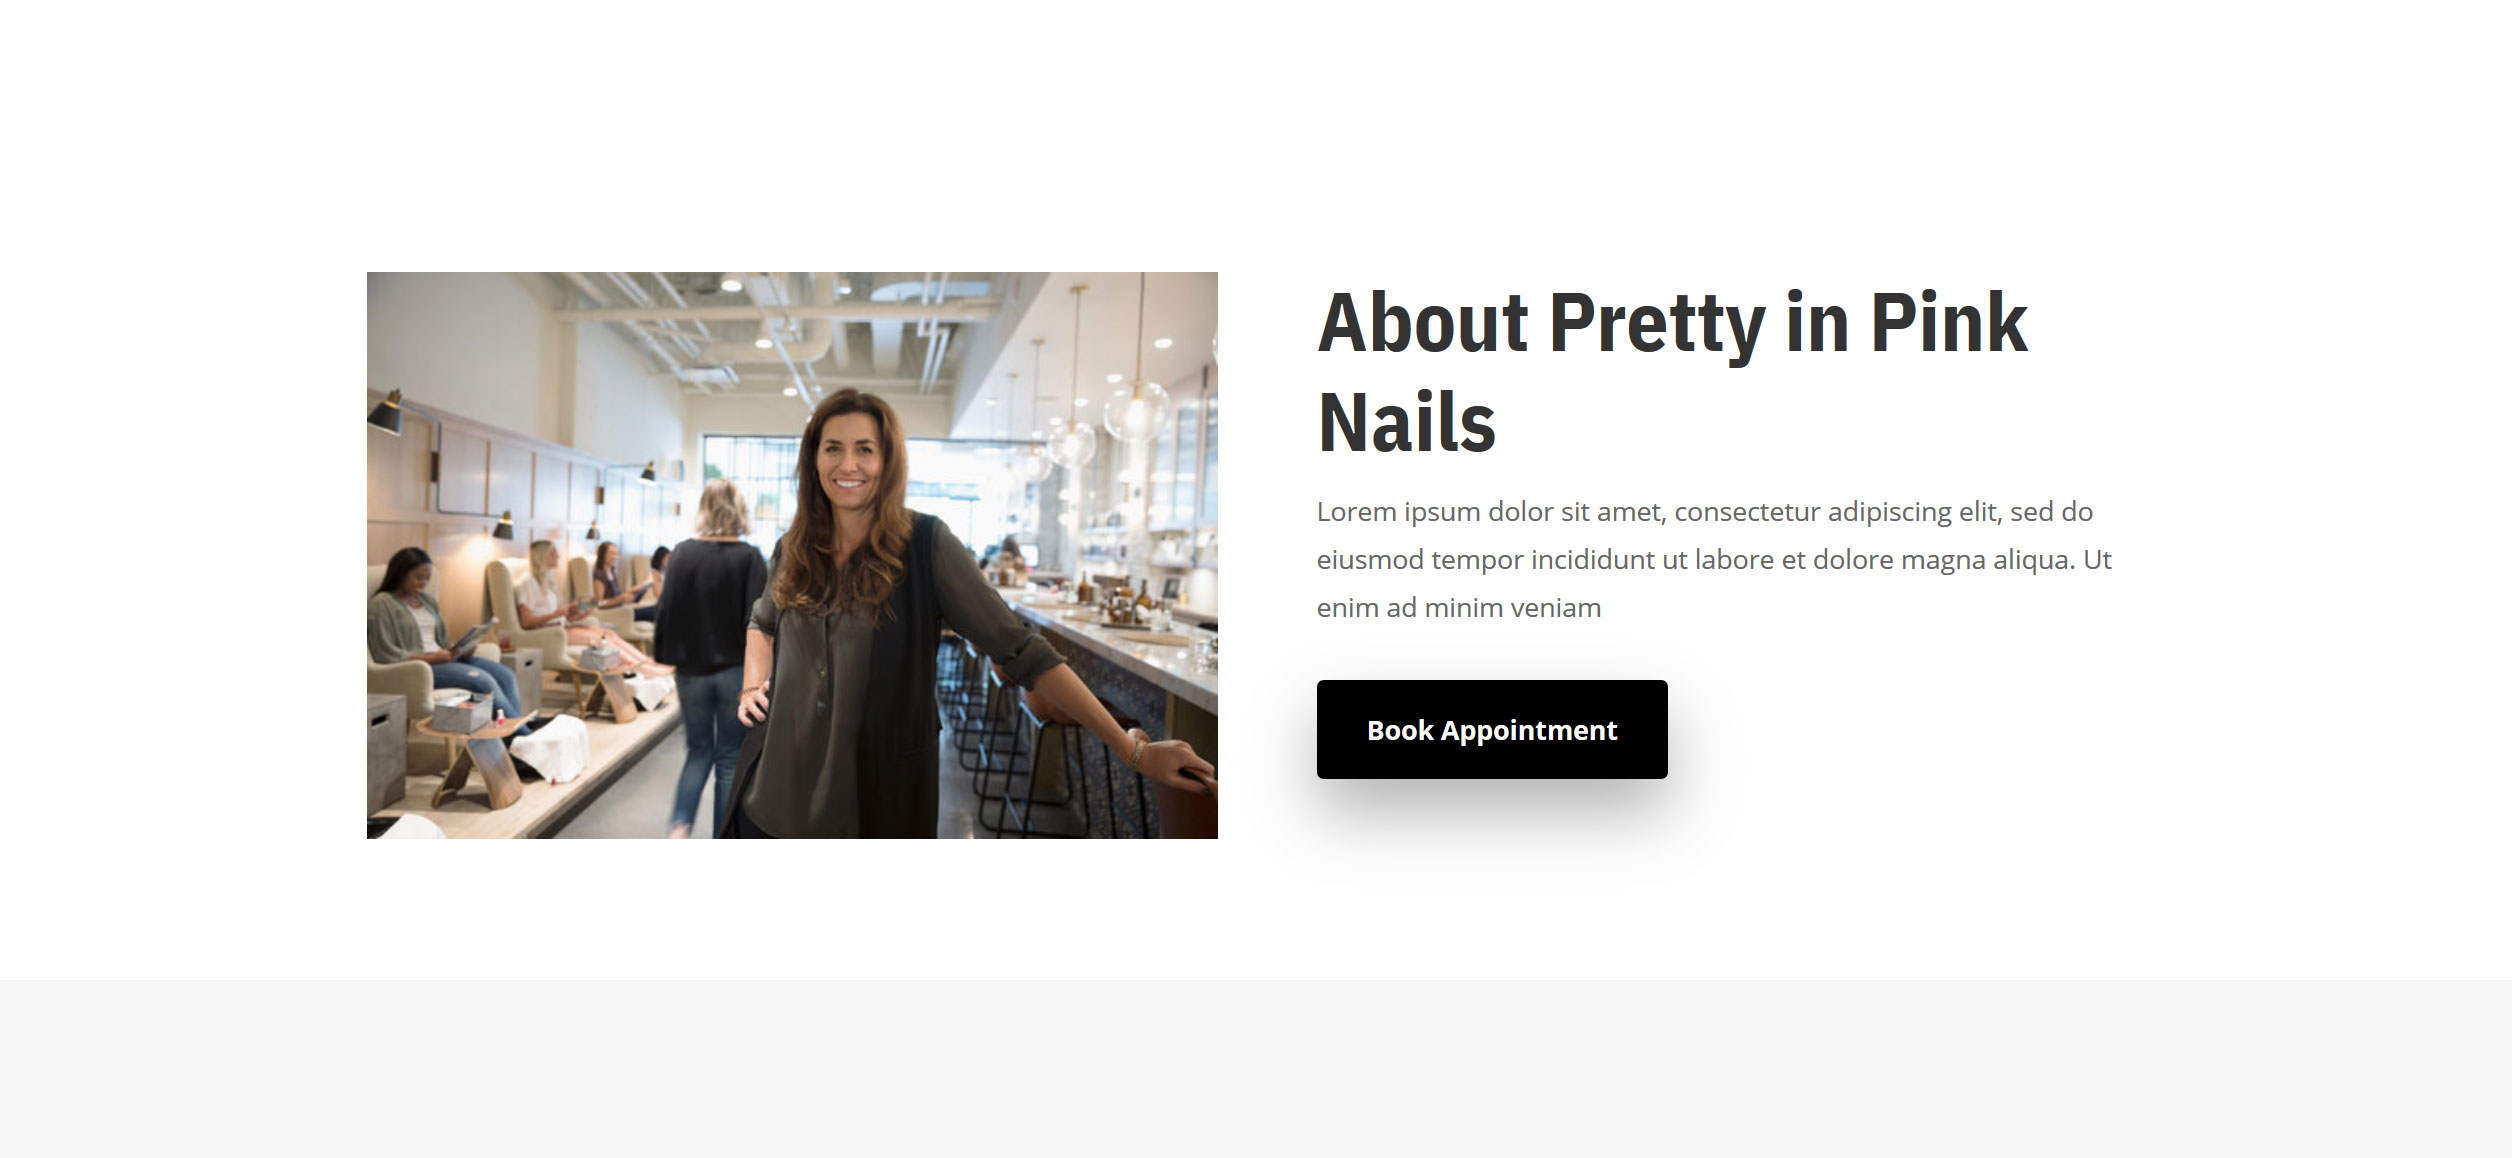 Website for Nail Salons v1 - About Info